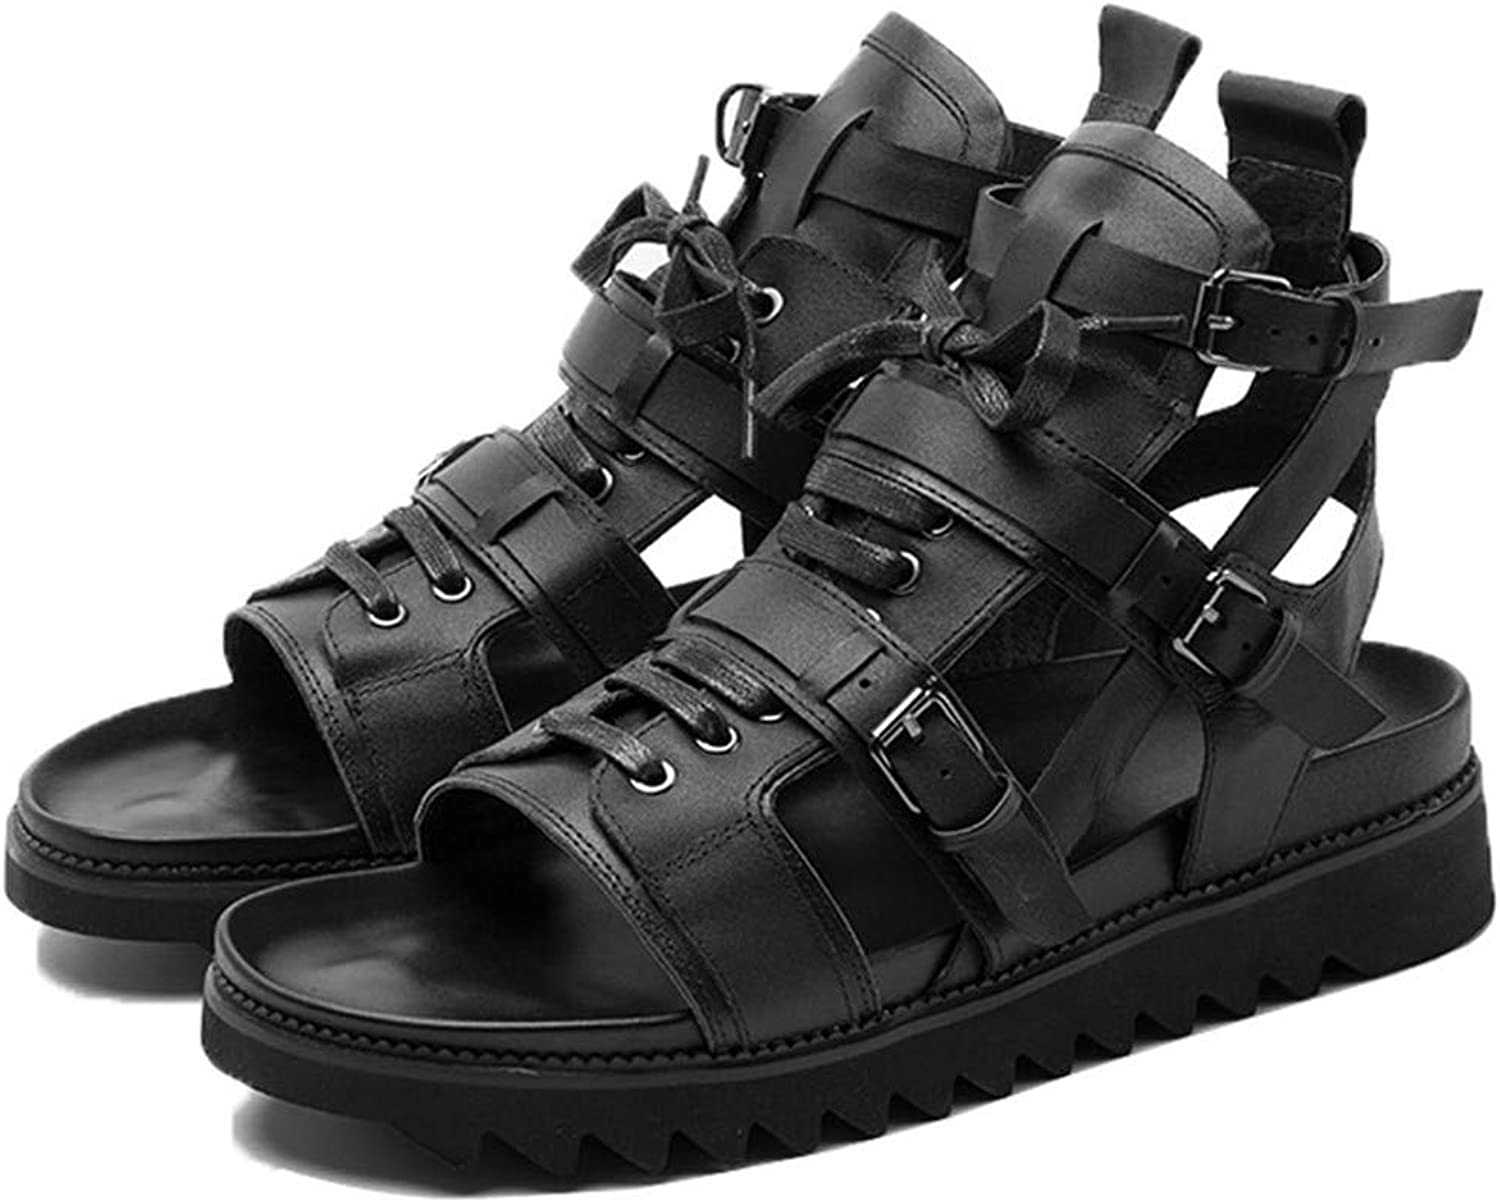 2019 Italian New Cow Real Leather High Top Men Beach Sandals Thick Platform Lace Up Buckle Strap Hollow Out Punk Gladiator shoes